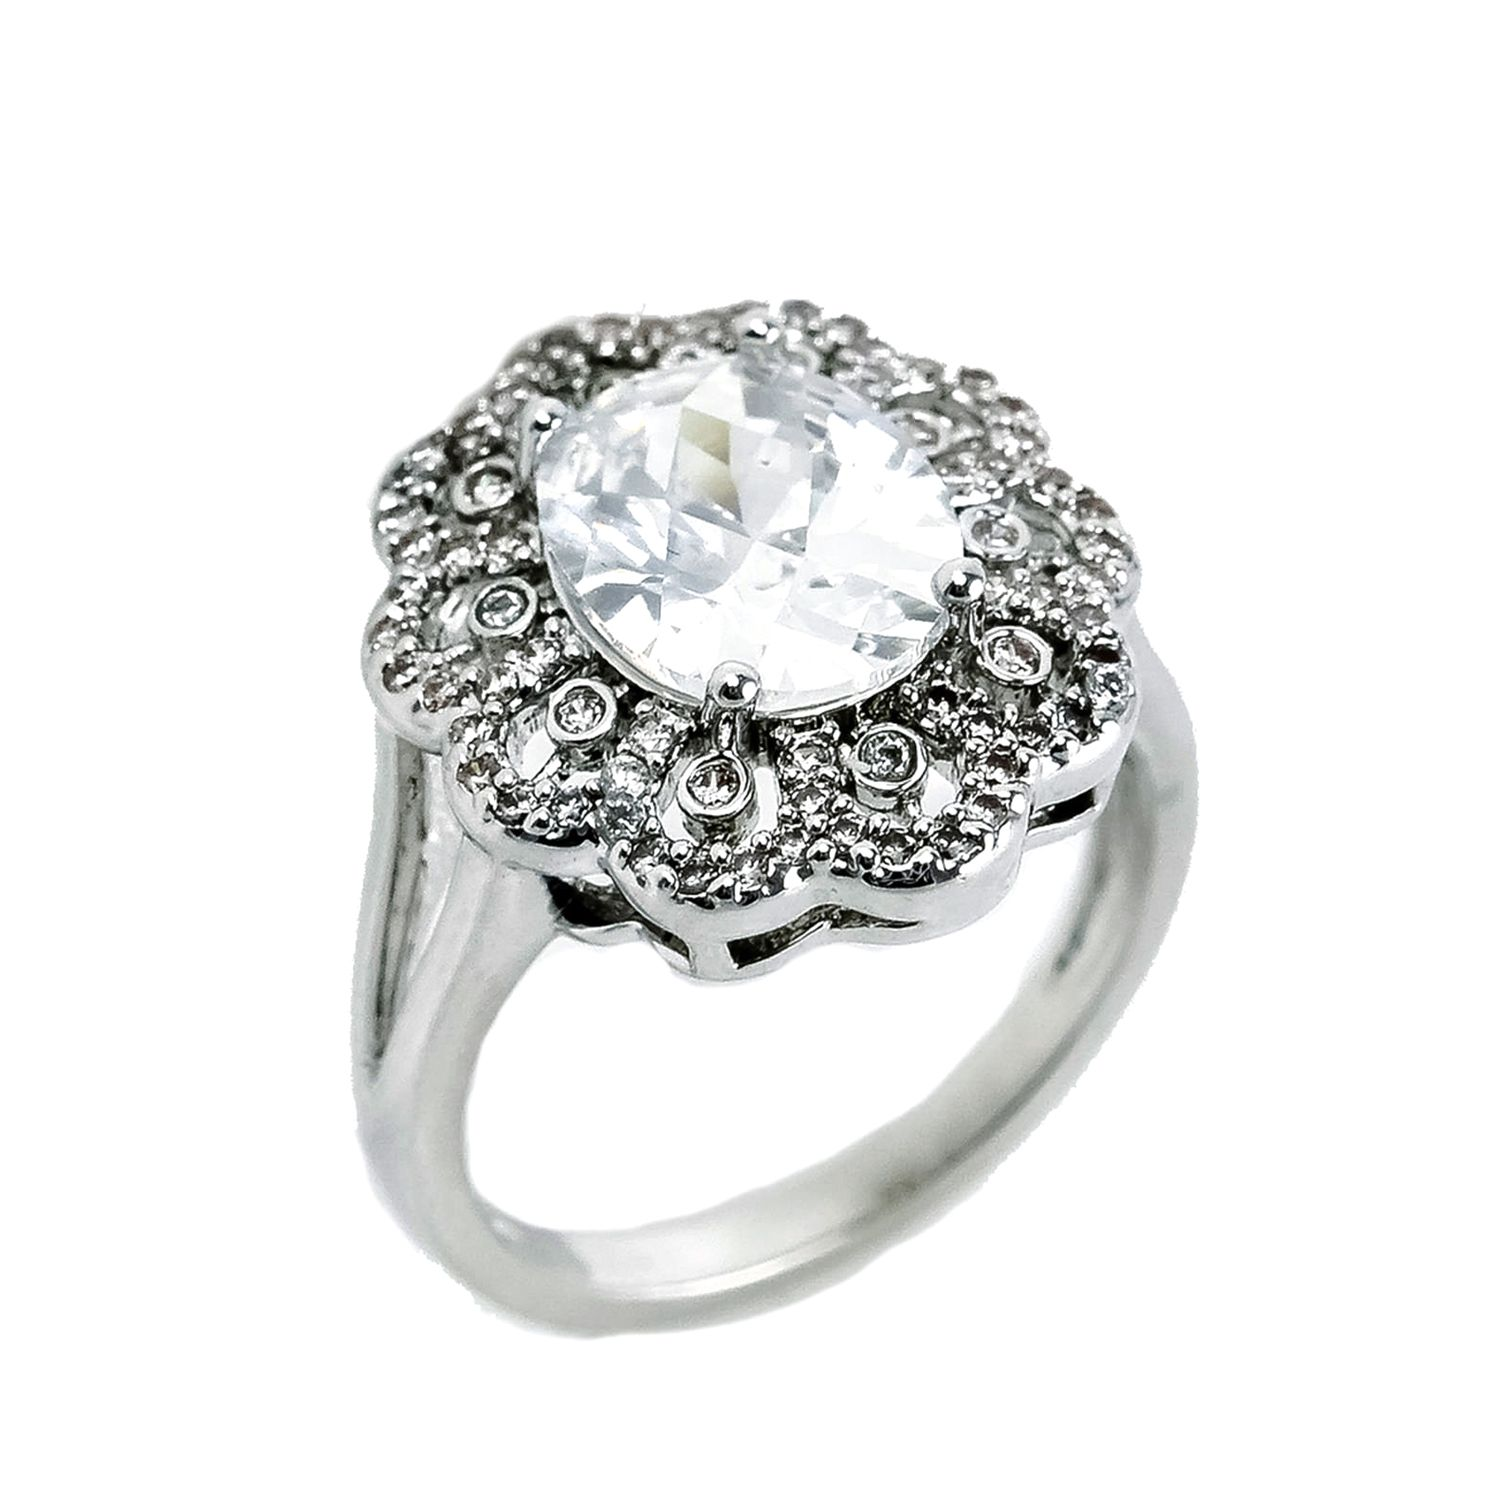 CZ cocktail ring. Sizes 59. Item r2648 Rings